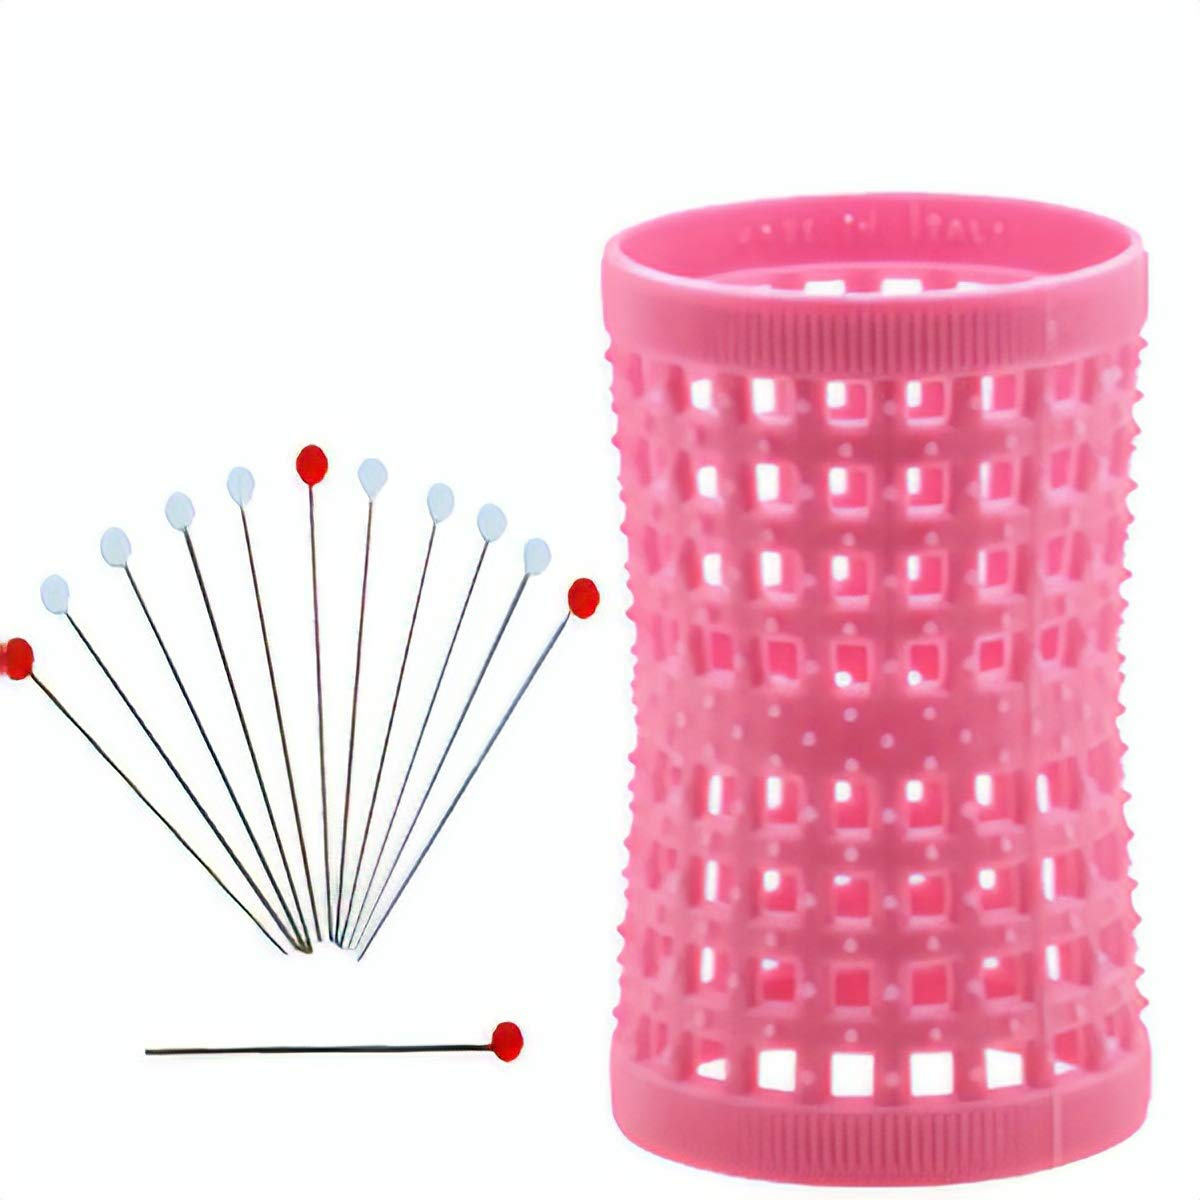 12 Metal Rollers Pins + Pink HGR 42mm/1.65in - Pack of 12 by Hourglass Hair Rollers